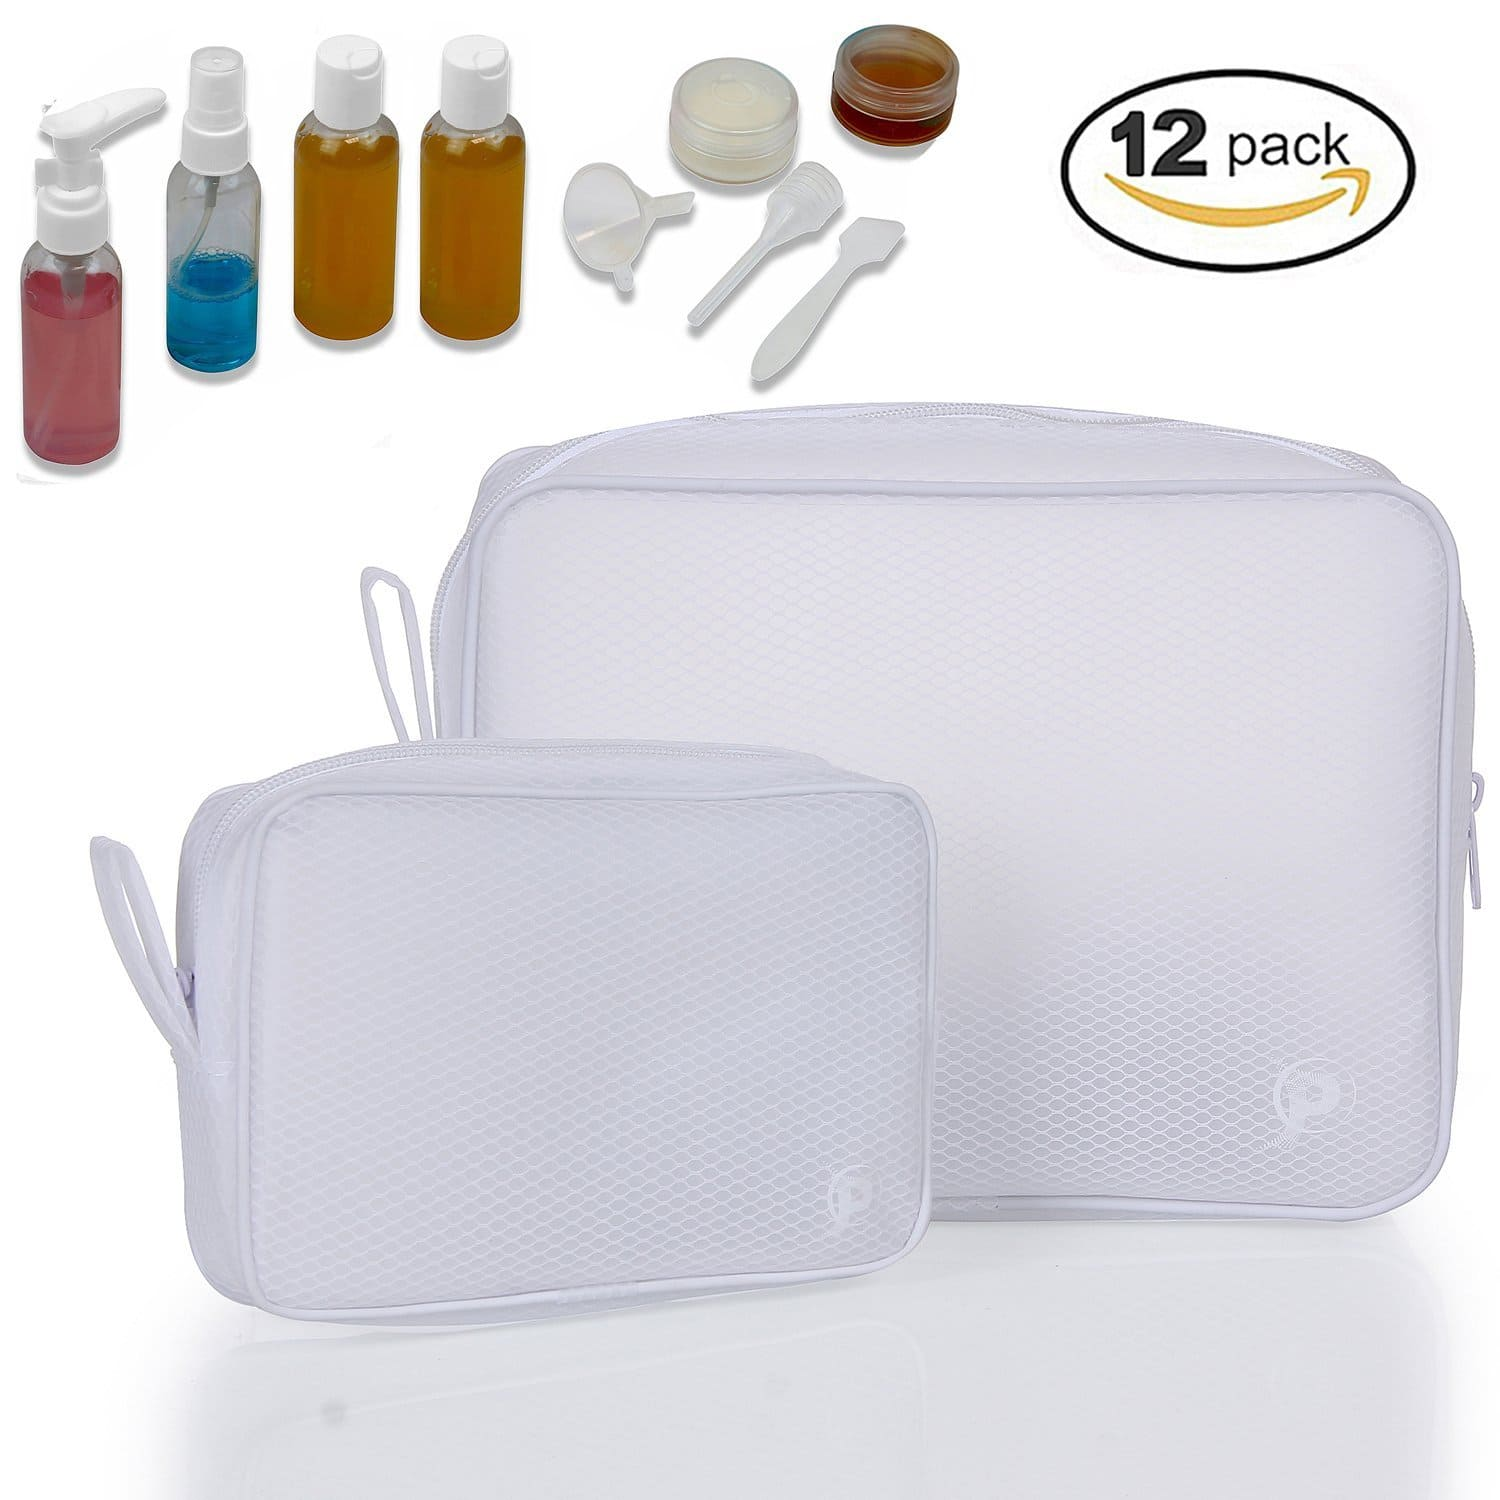 50% Off Toiletry Bags Travel Bottles Set 12pcs, only $7.6